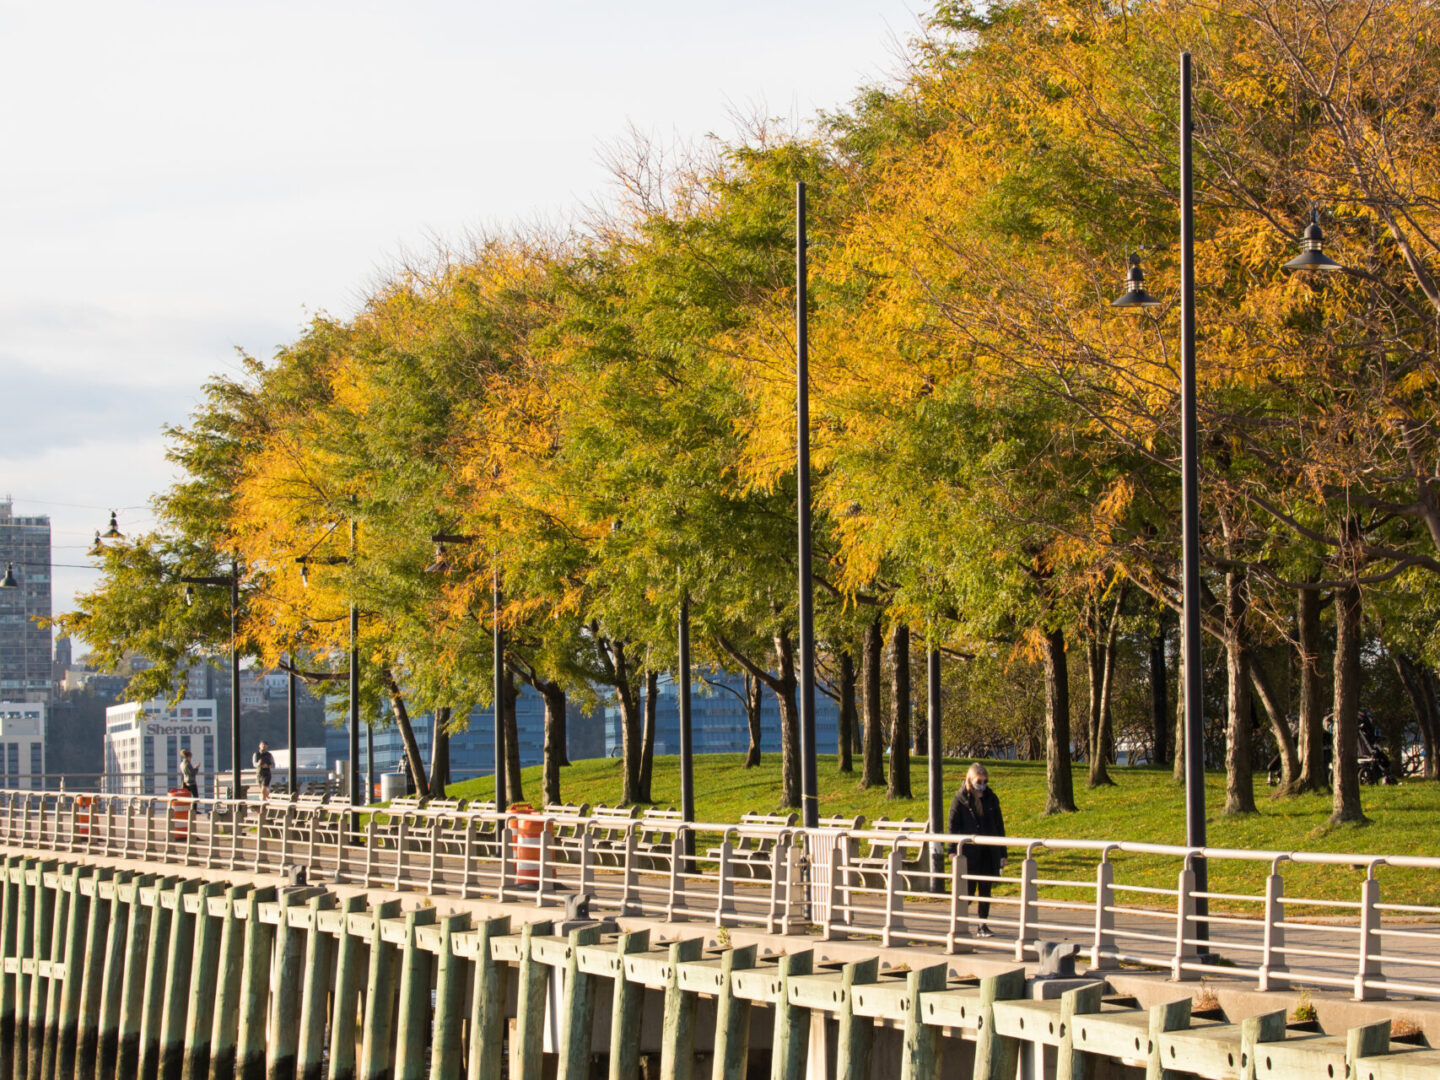 Pier 64 fall foliage side view 2020